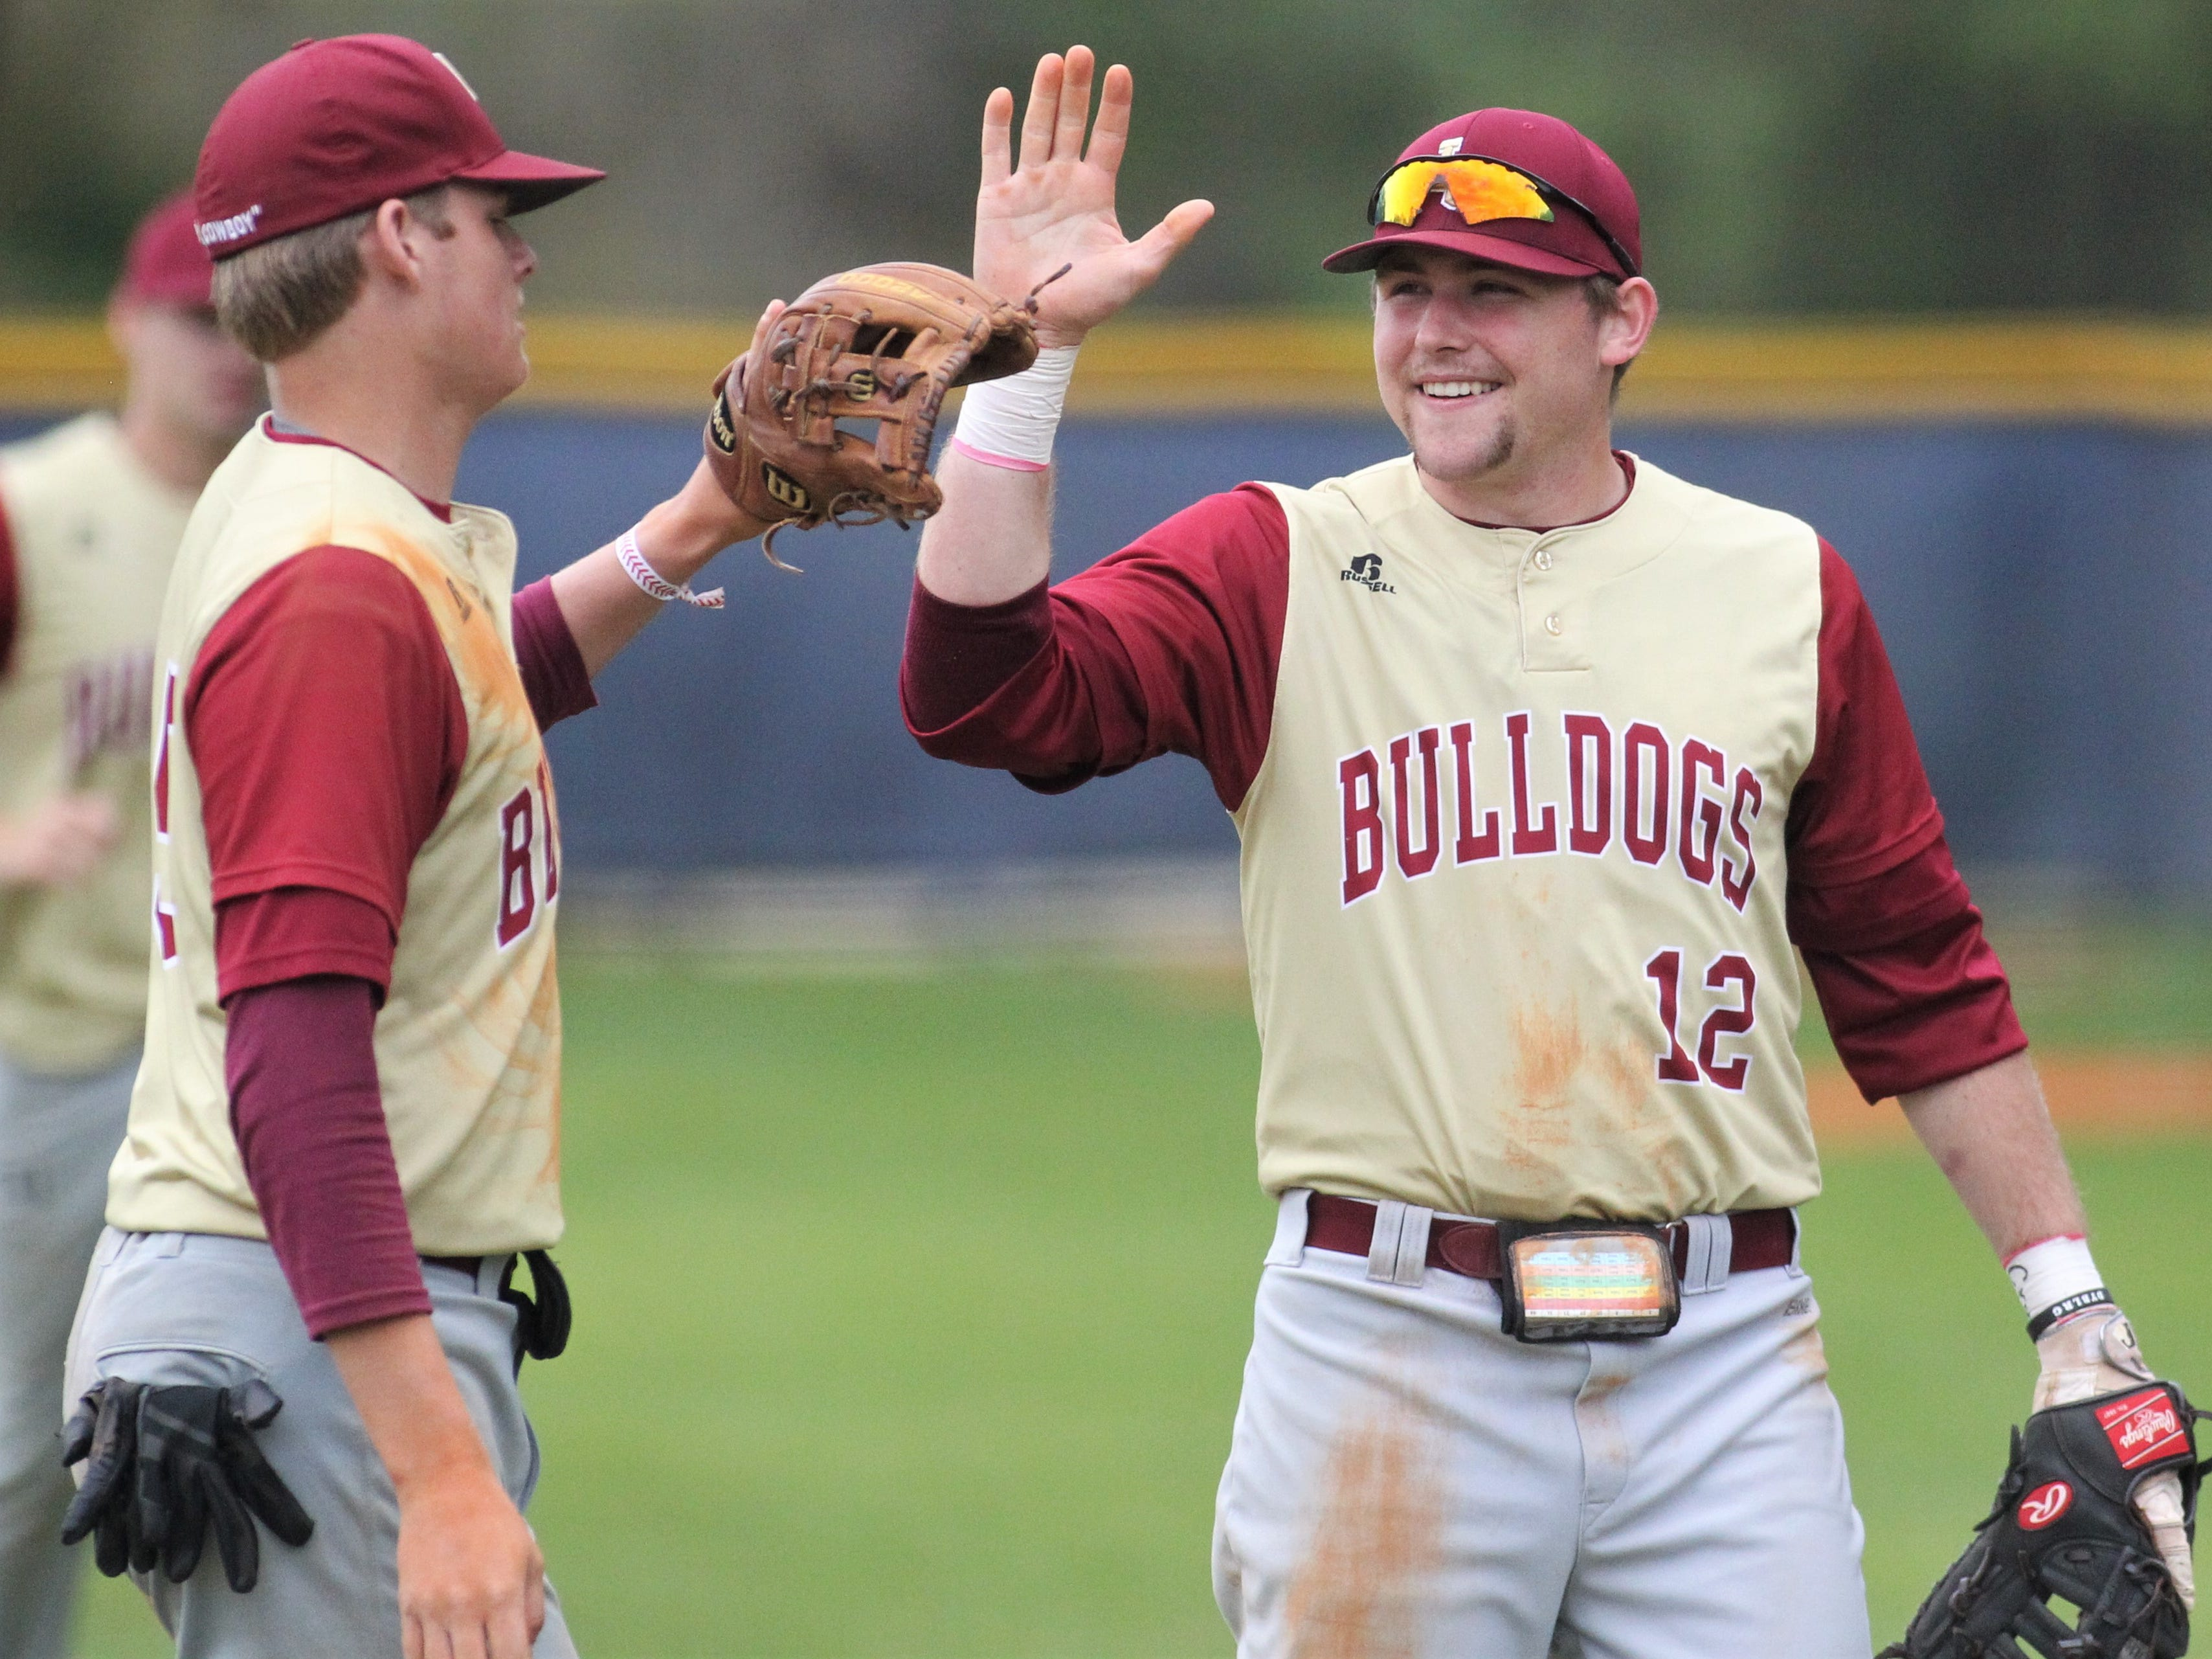 Liberty County first baseman Brady Peddie high fives Brice Dillmore as Liberty County's baseball team went on the road to beat Maclay 8-2 on Saturday, March 16, 2019. The Bulldogs played their first game following their head coach Corey Crum's tragic death six days ago.